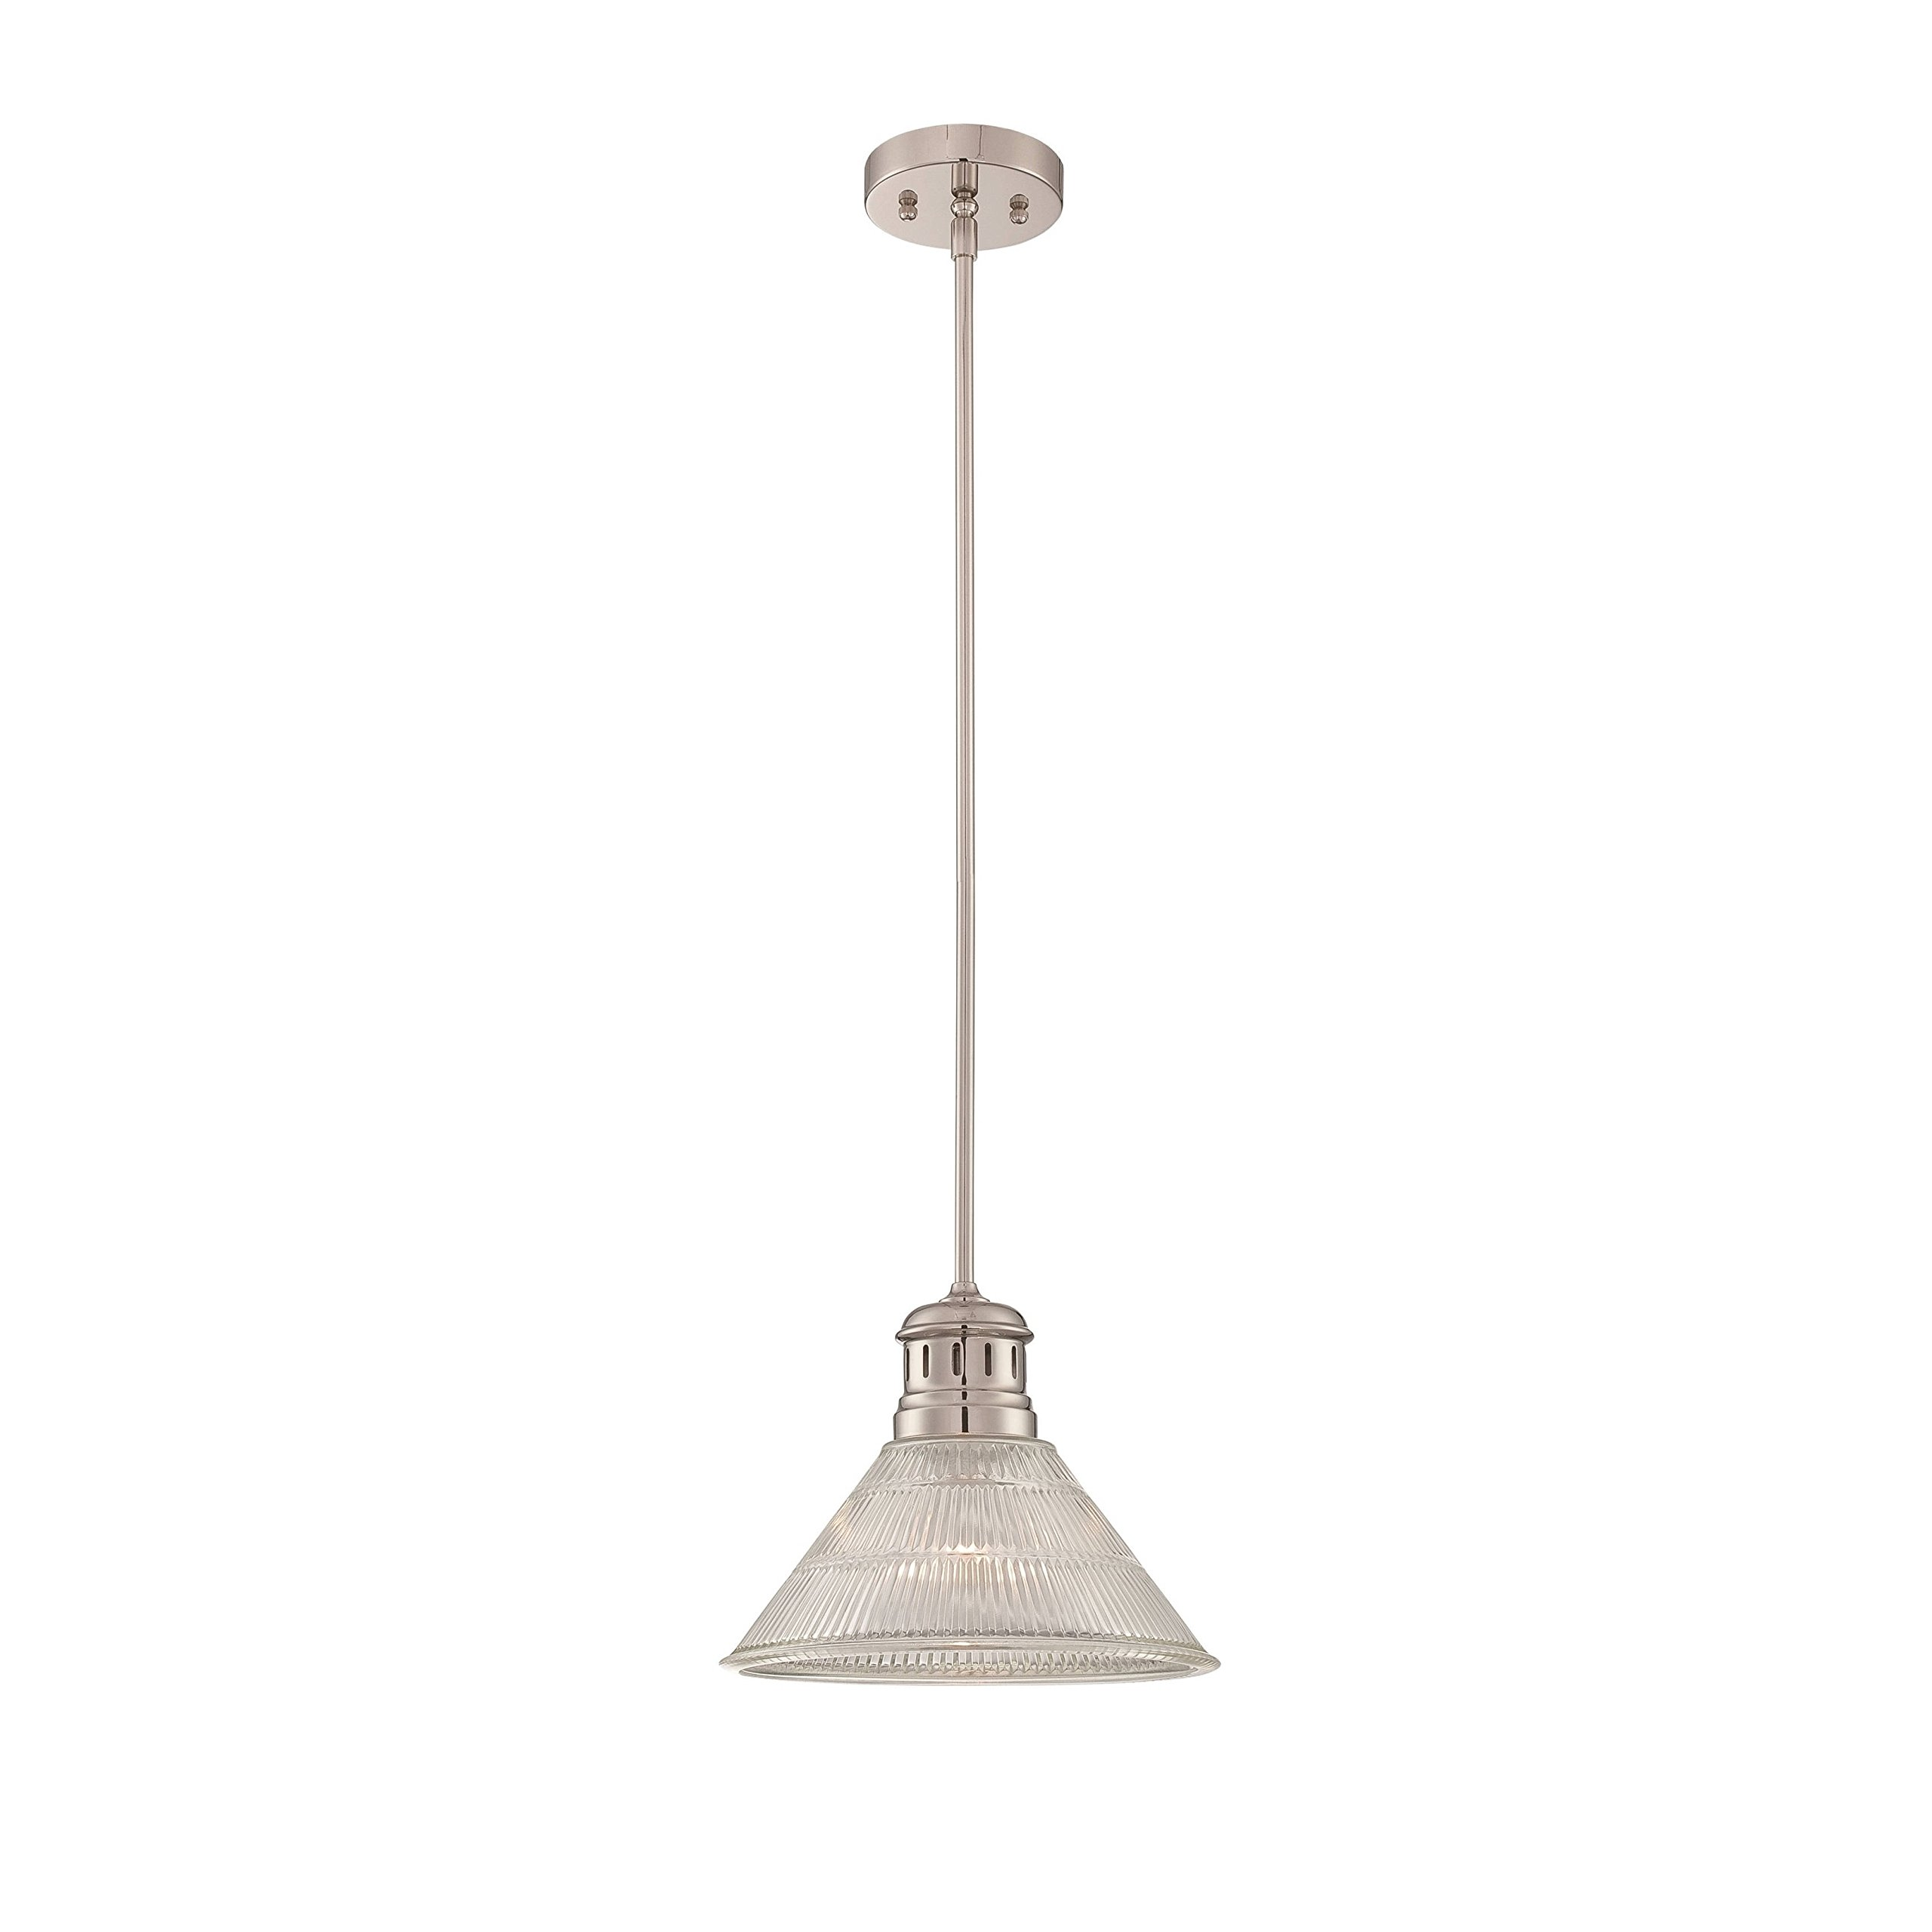 Lite Source LS-19792 Gale Pendant, Polished Steel Finish